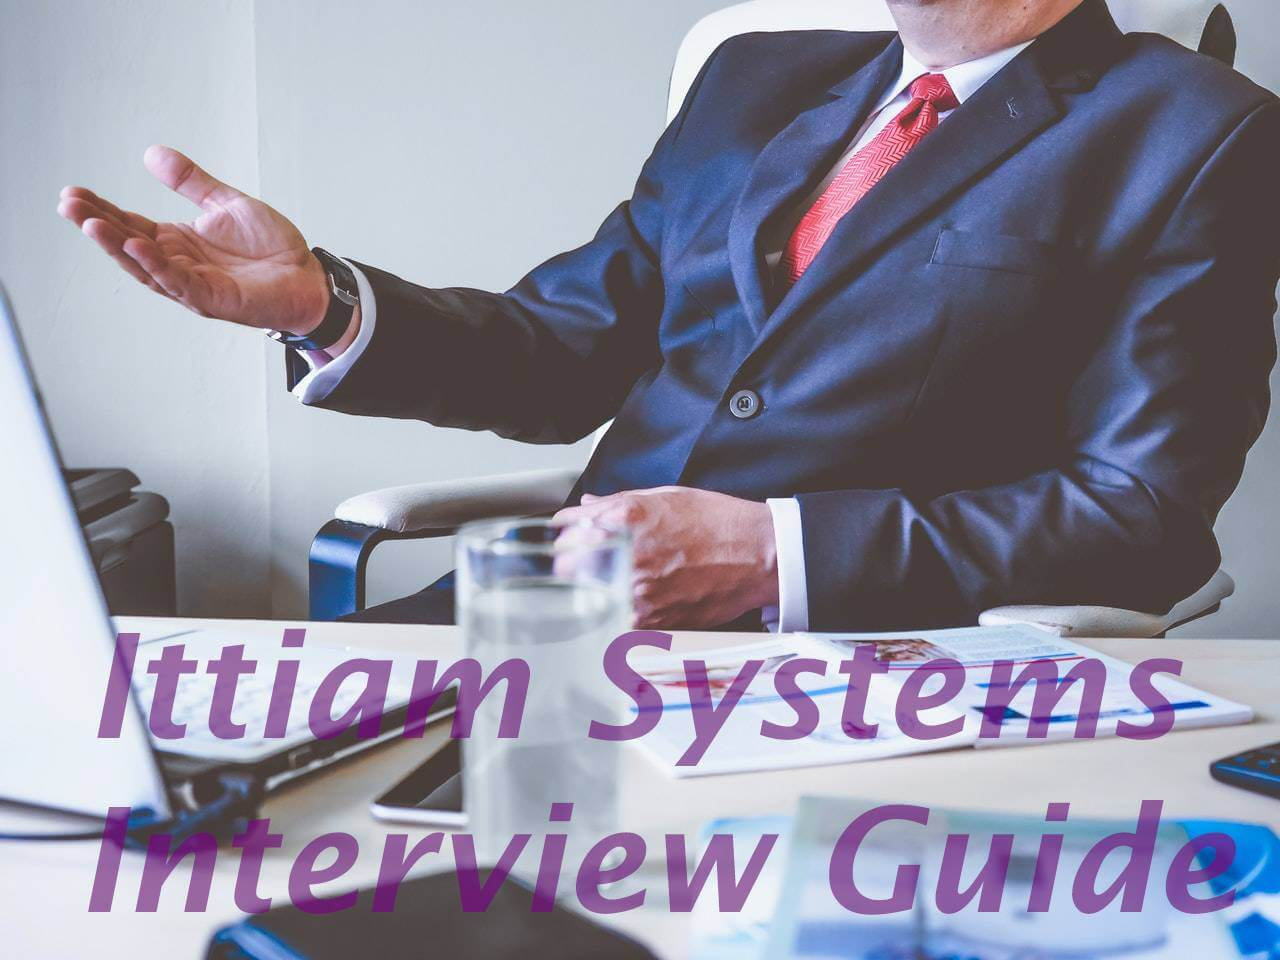 Ittiam systems interview